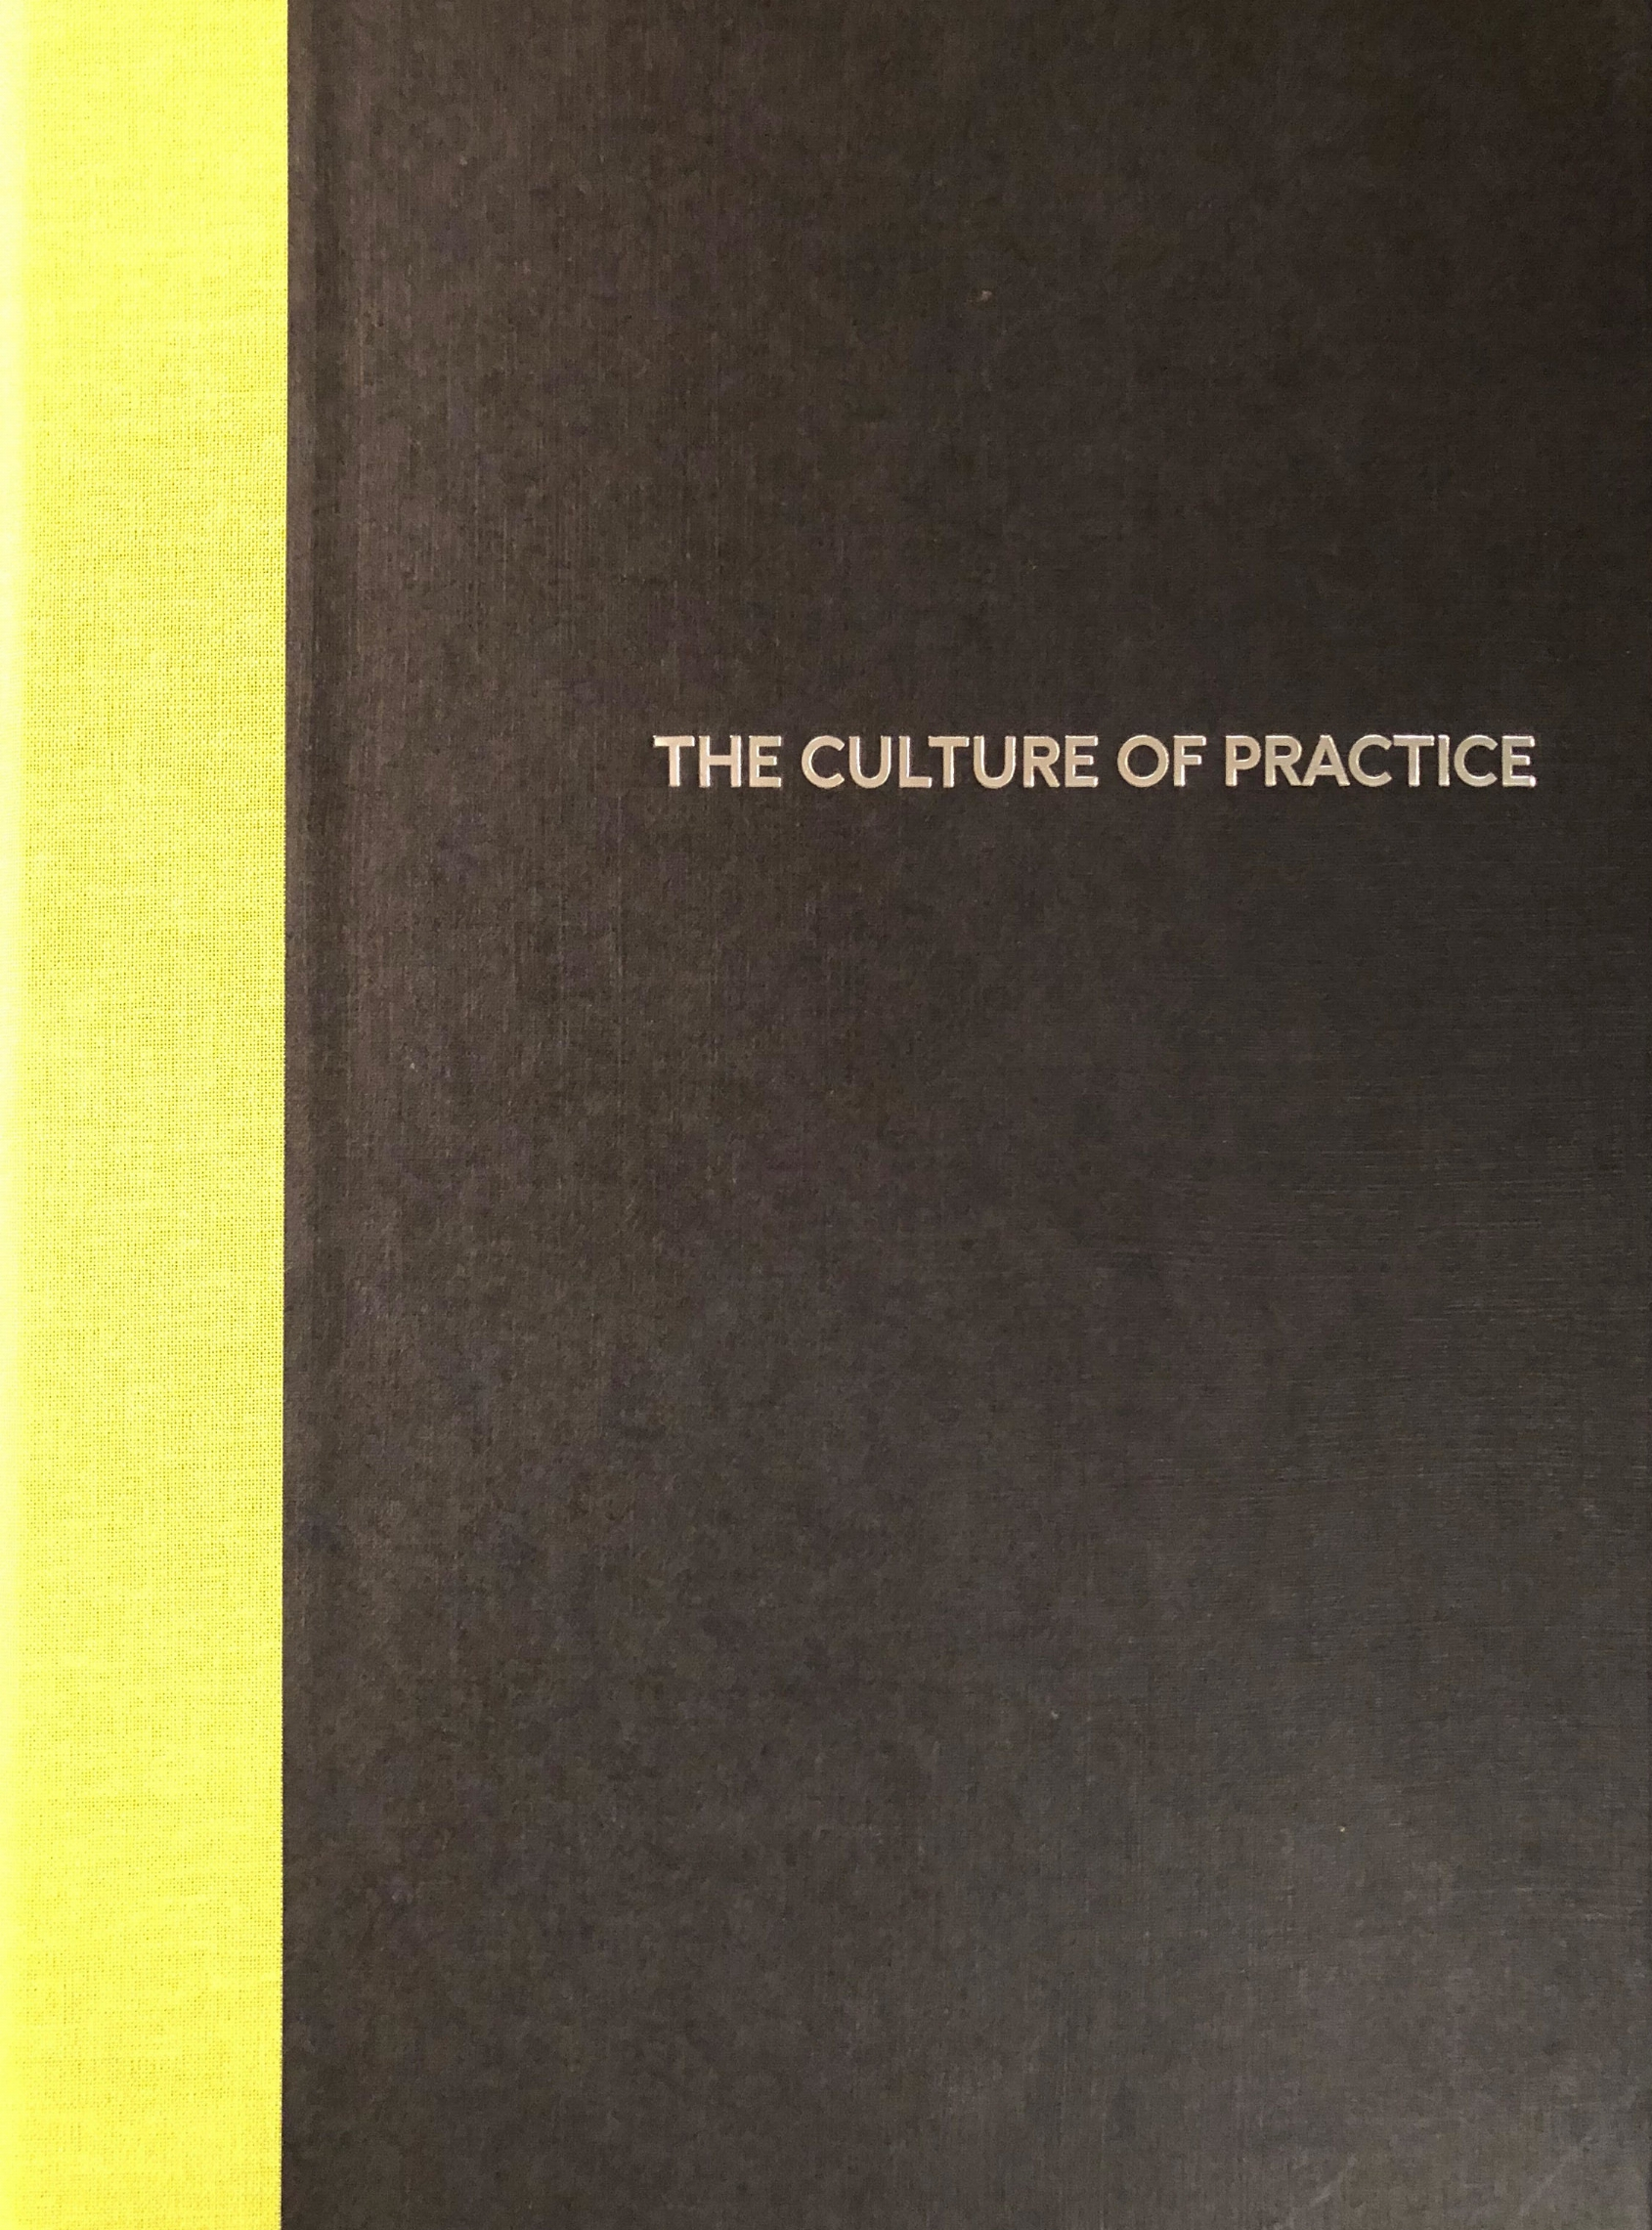 The Culture of Practice